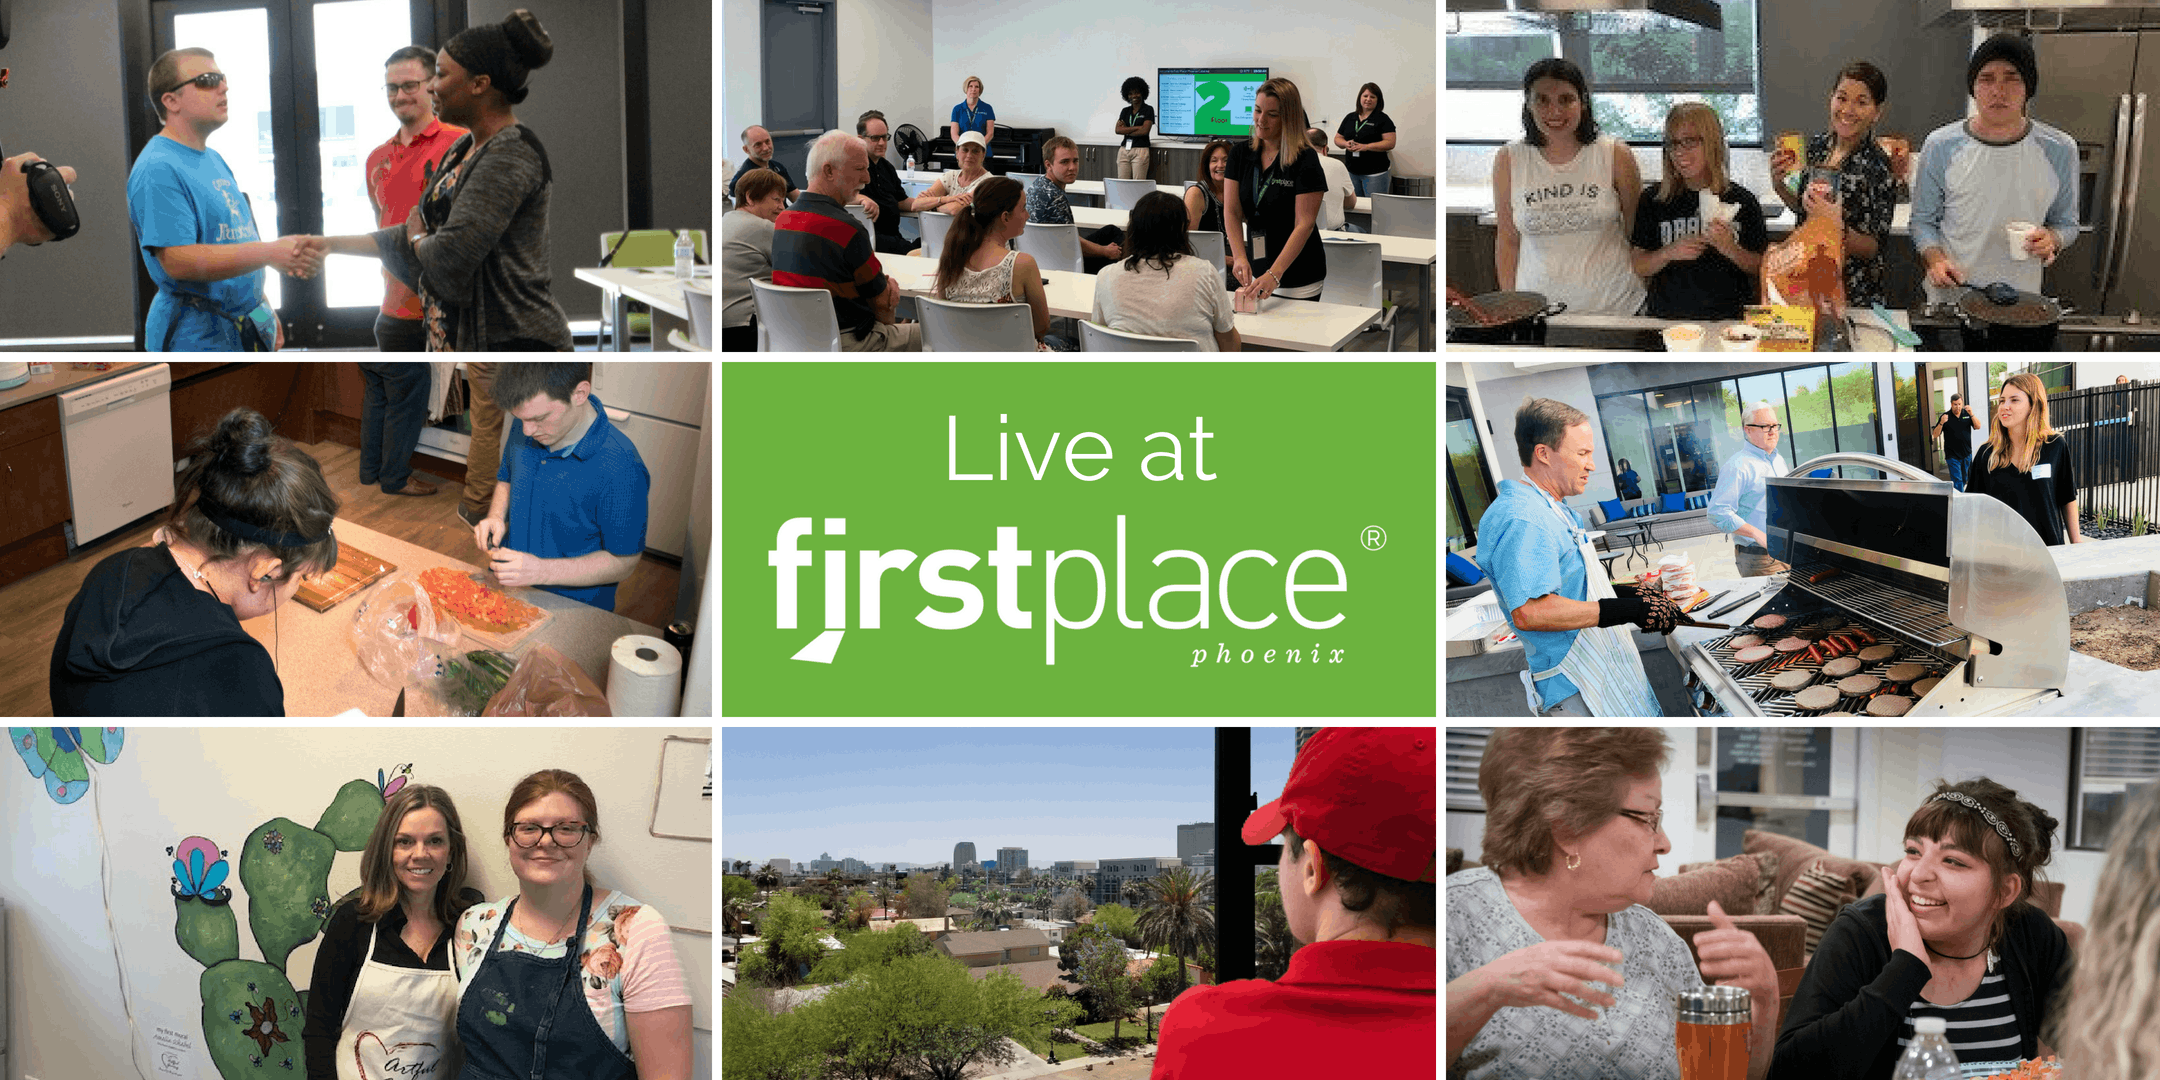 Explore First Place–Phoenix - May 3